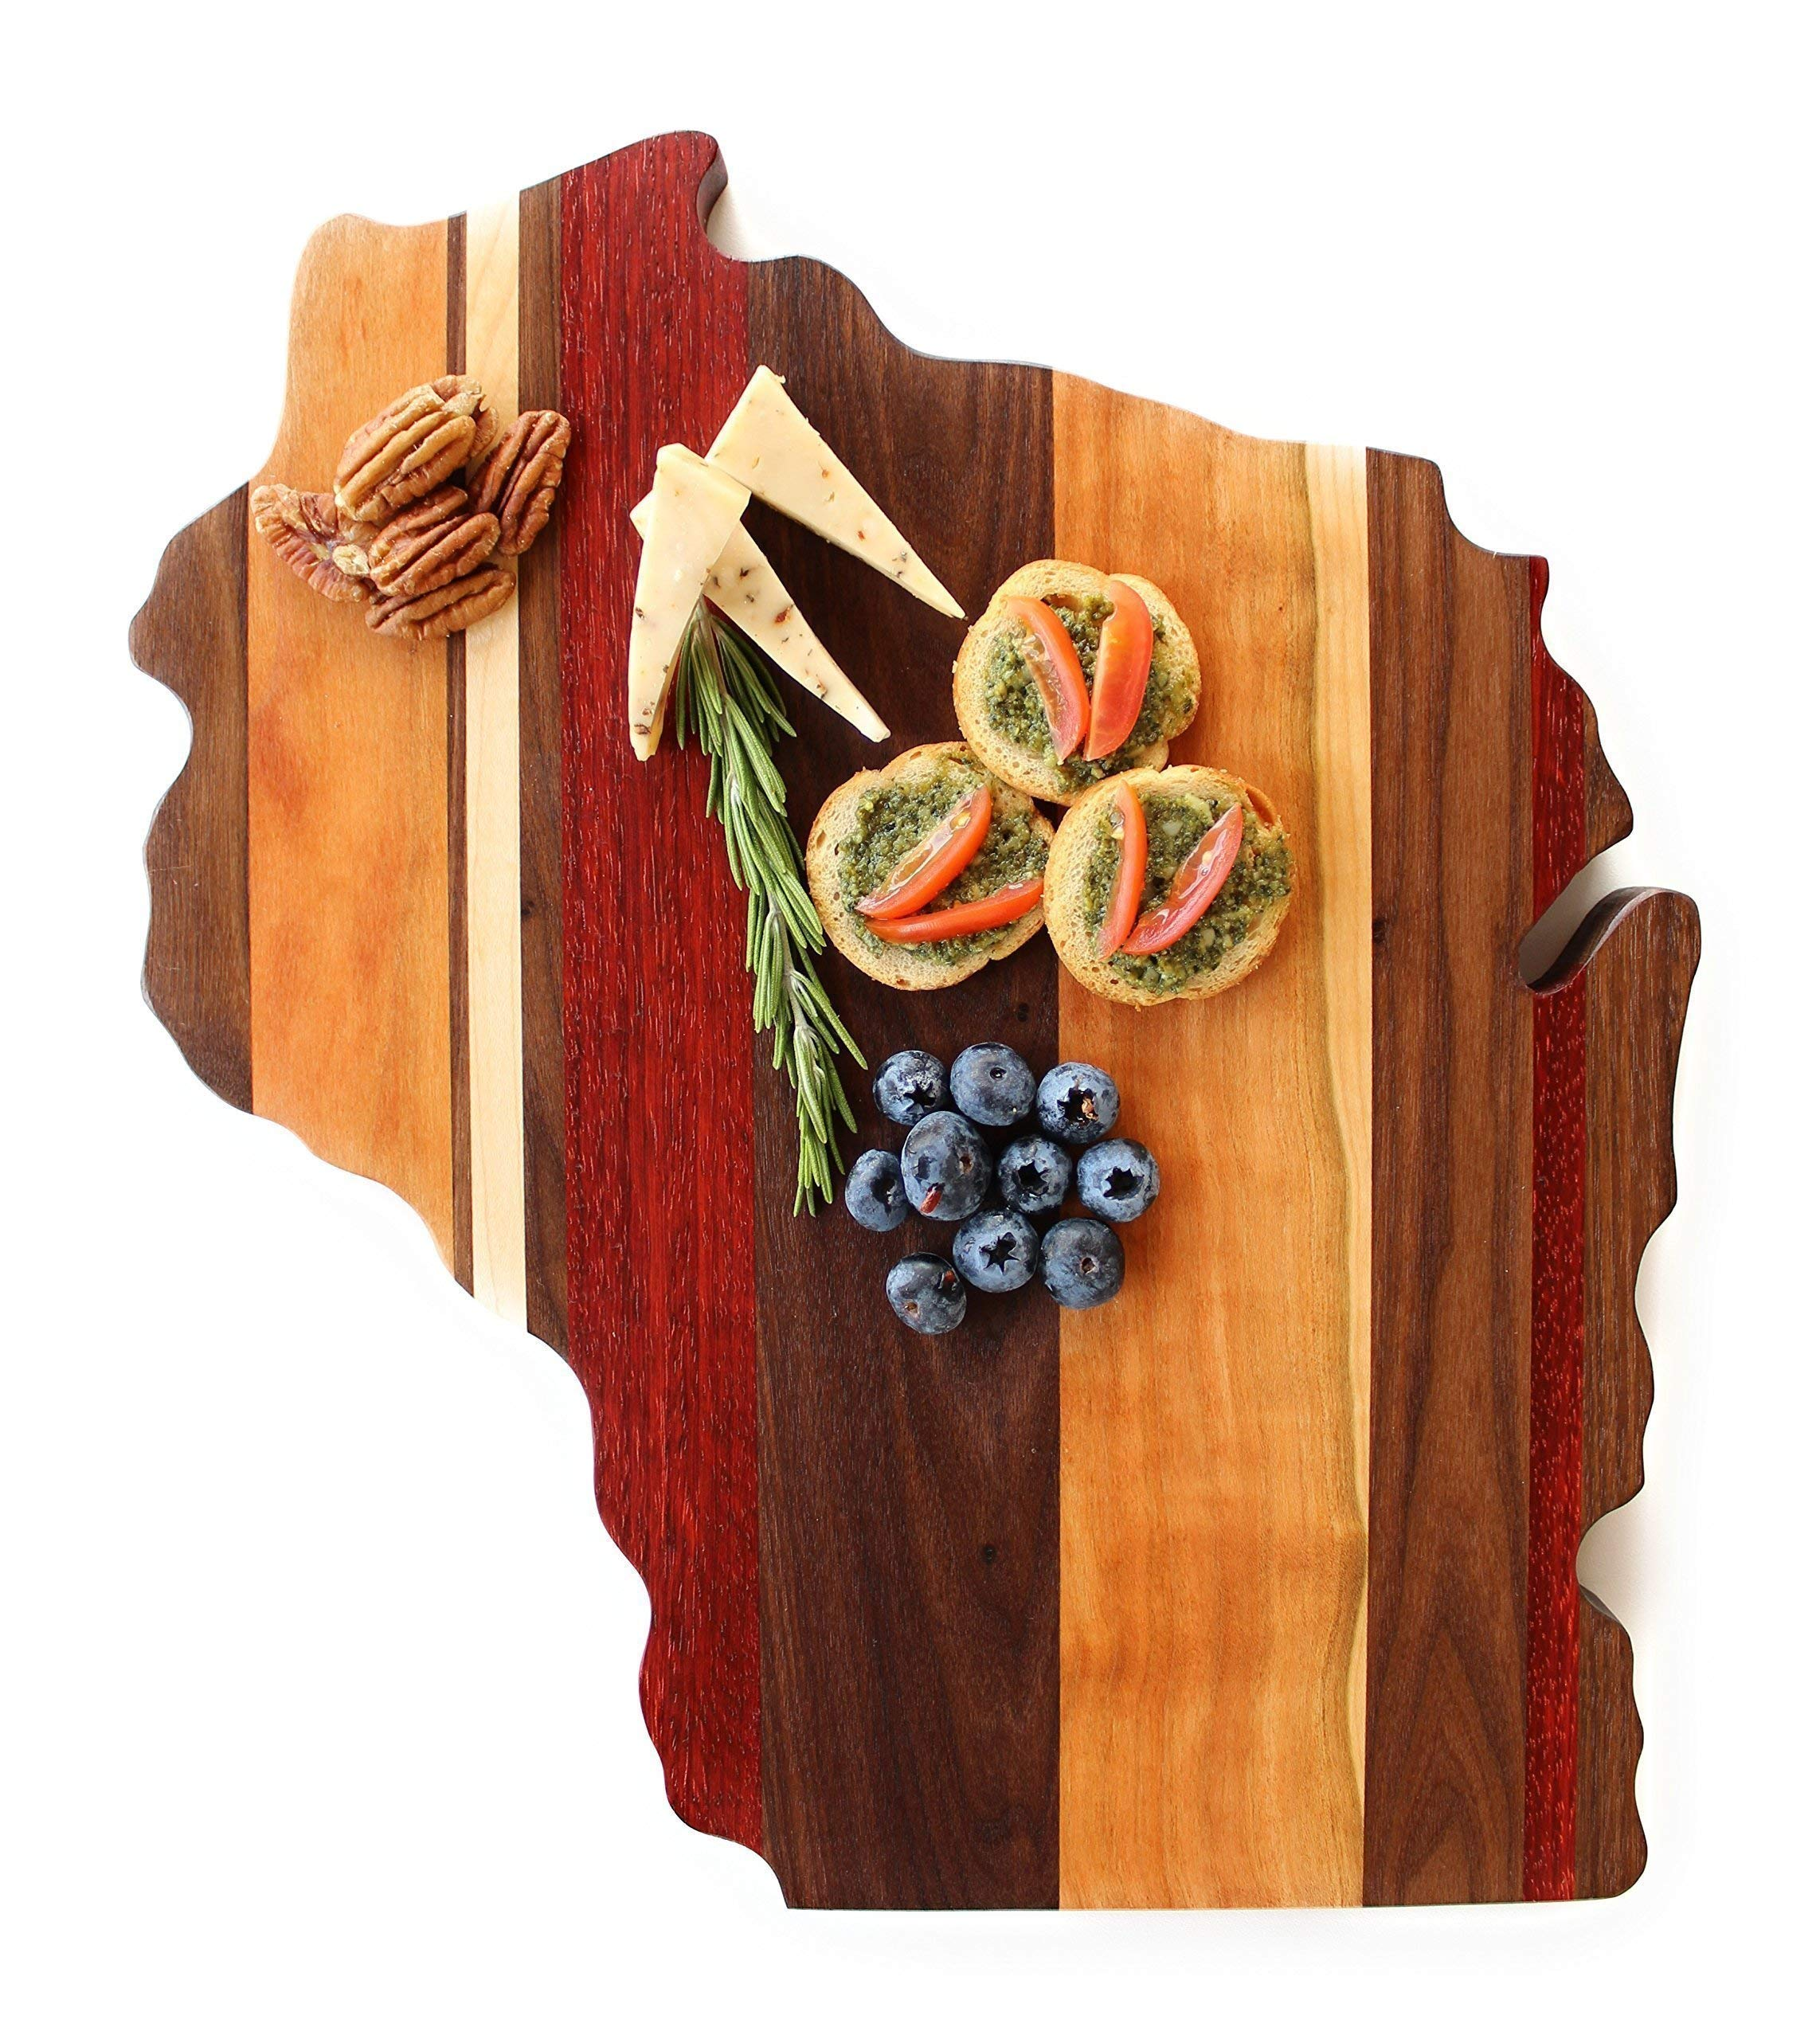 Wisconsin Cutting Board Wood Engraved Personalized Wedding Anniversary Gift Custom Wooden Sign Closing Gift Great Lakes Chef State Cooking Wall Art Woodworking Handmade in USA